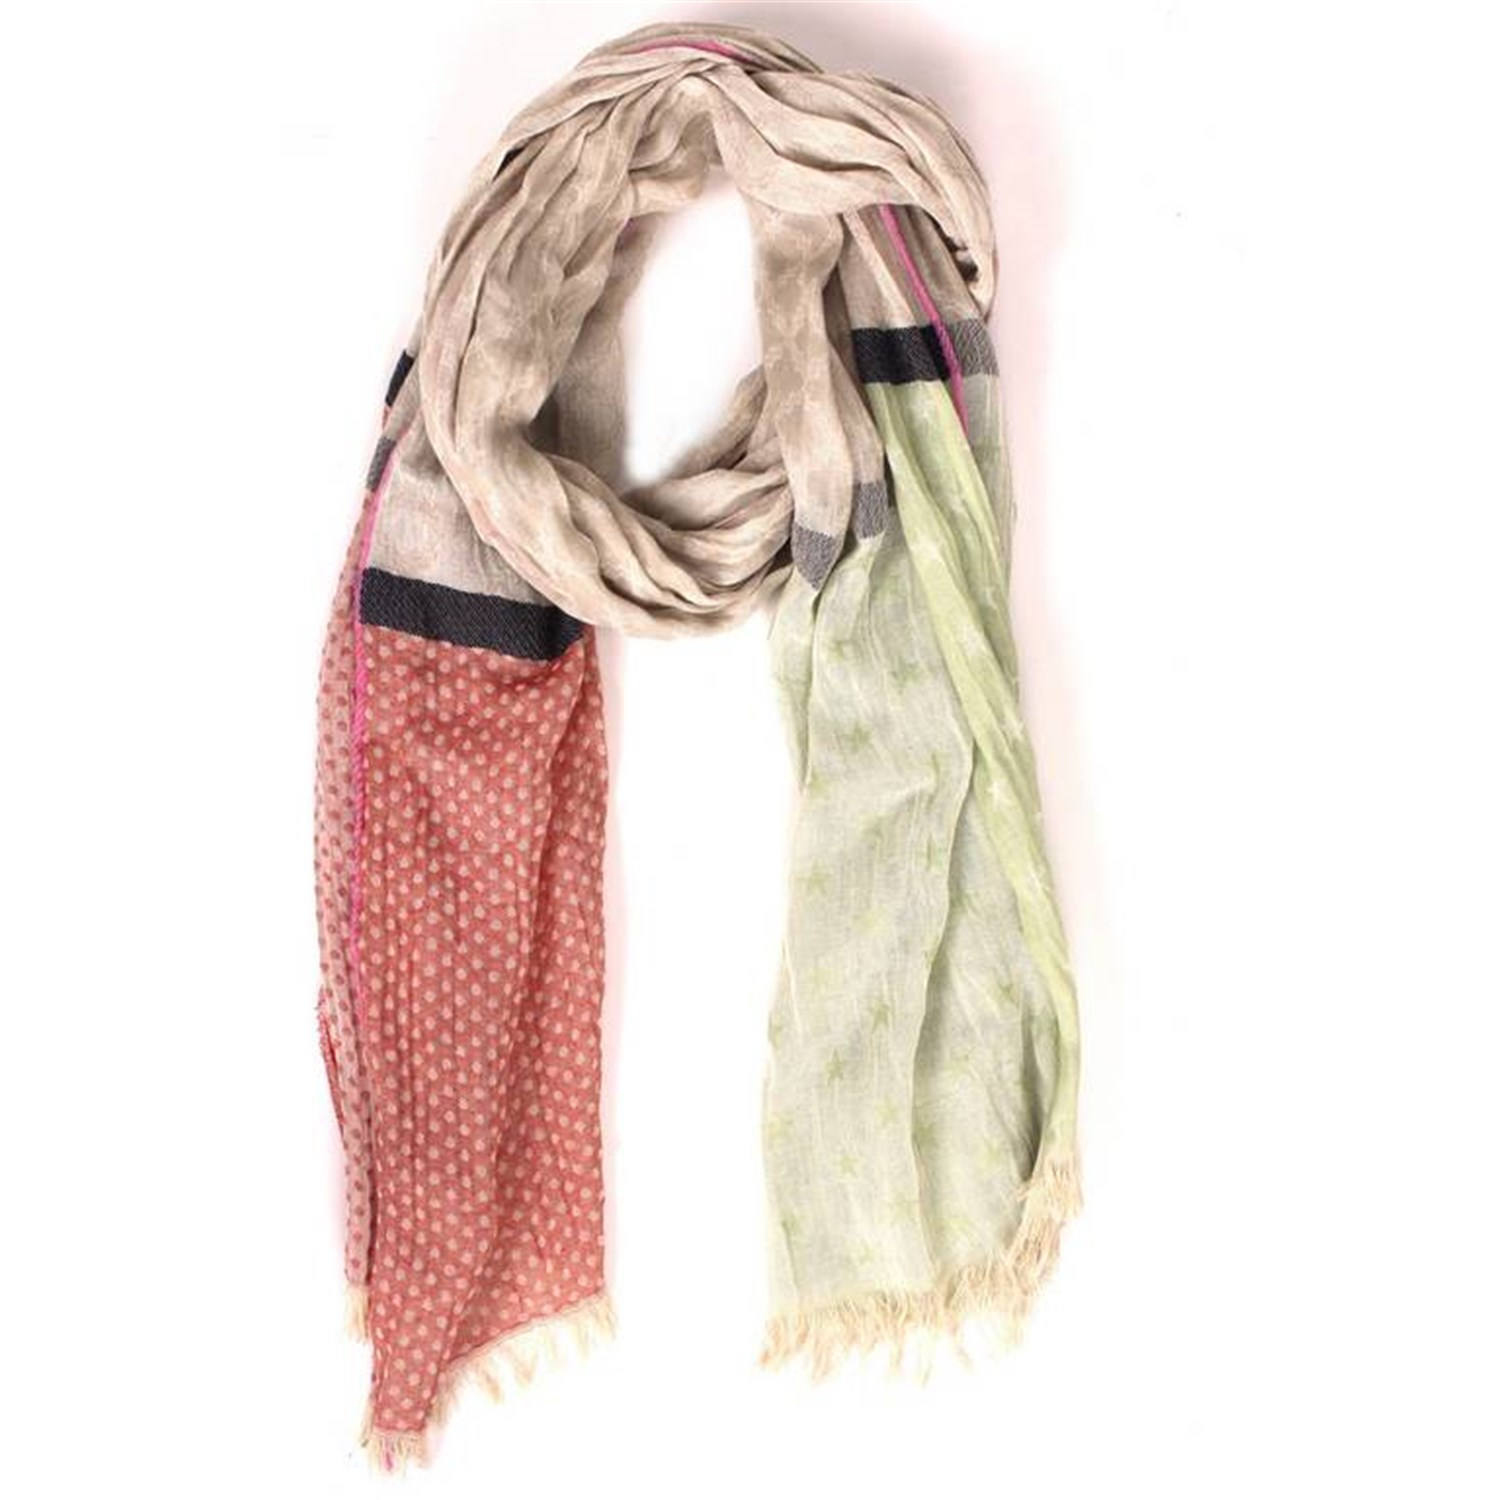 Passigatti Accessories Accessories Scarves WHITE 12119